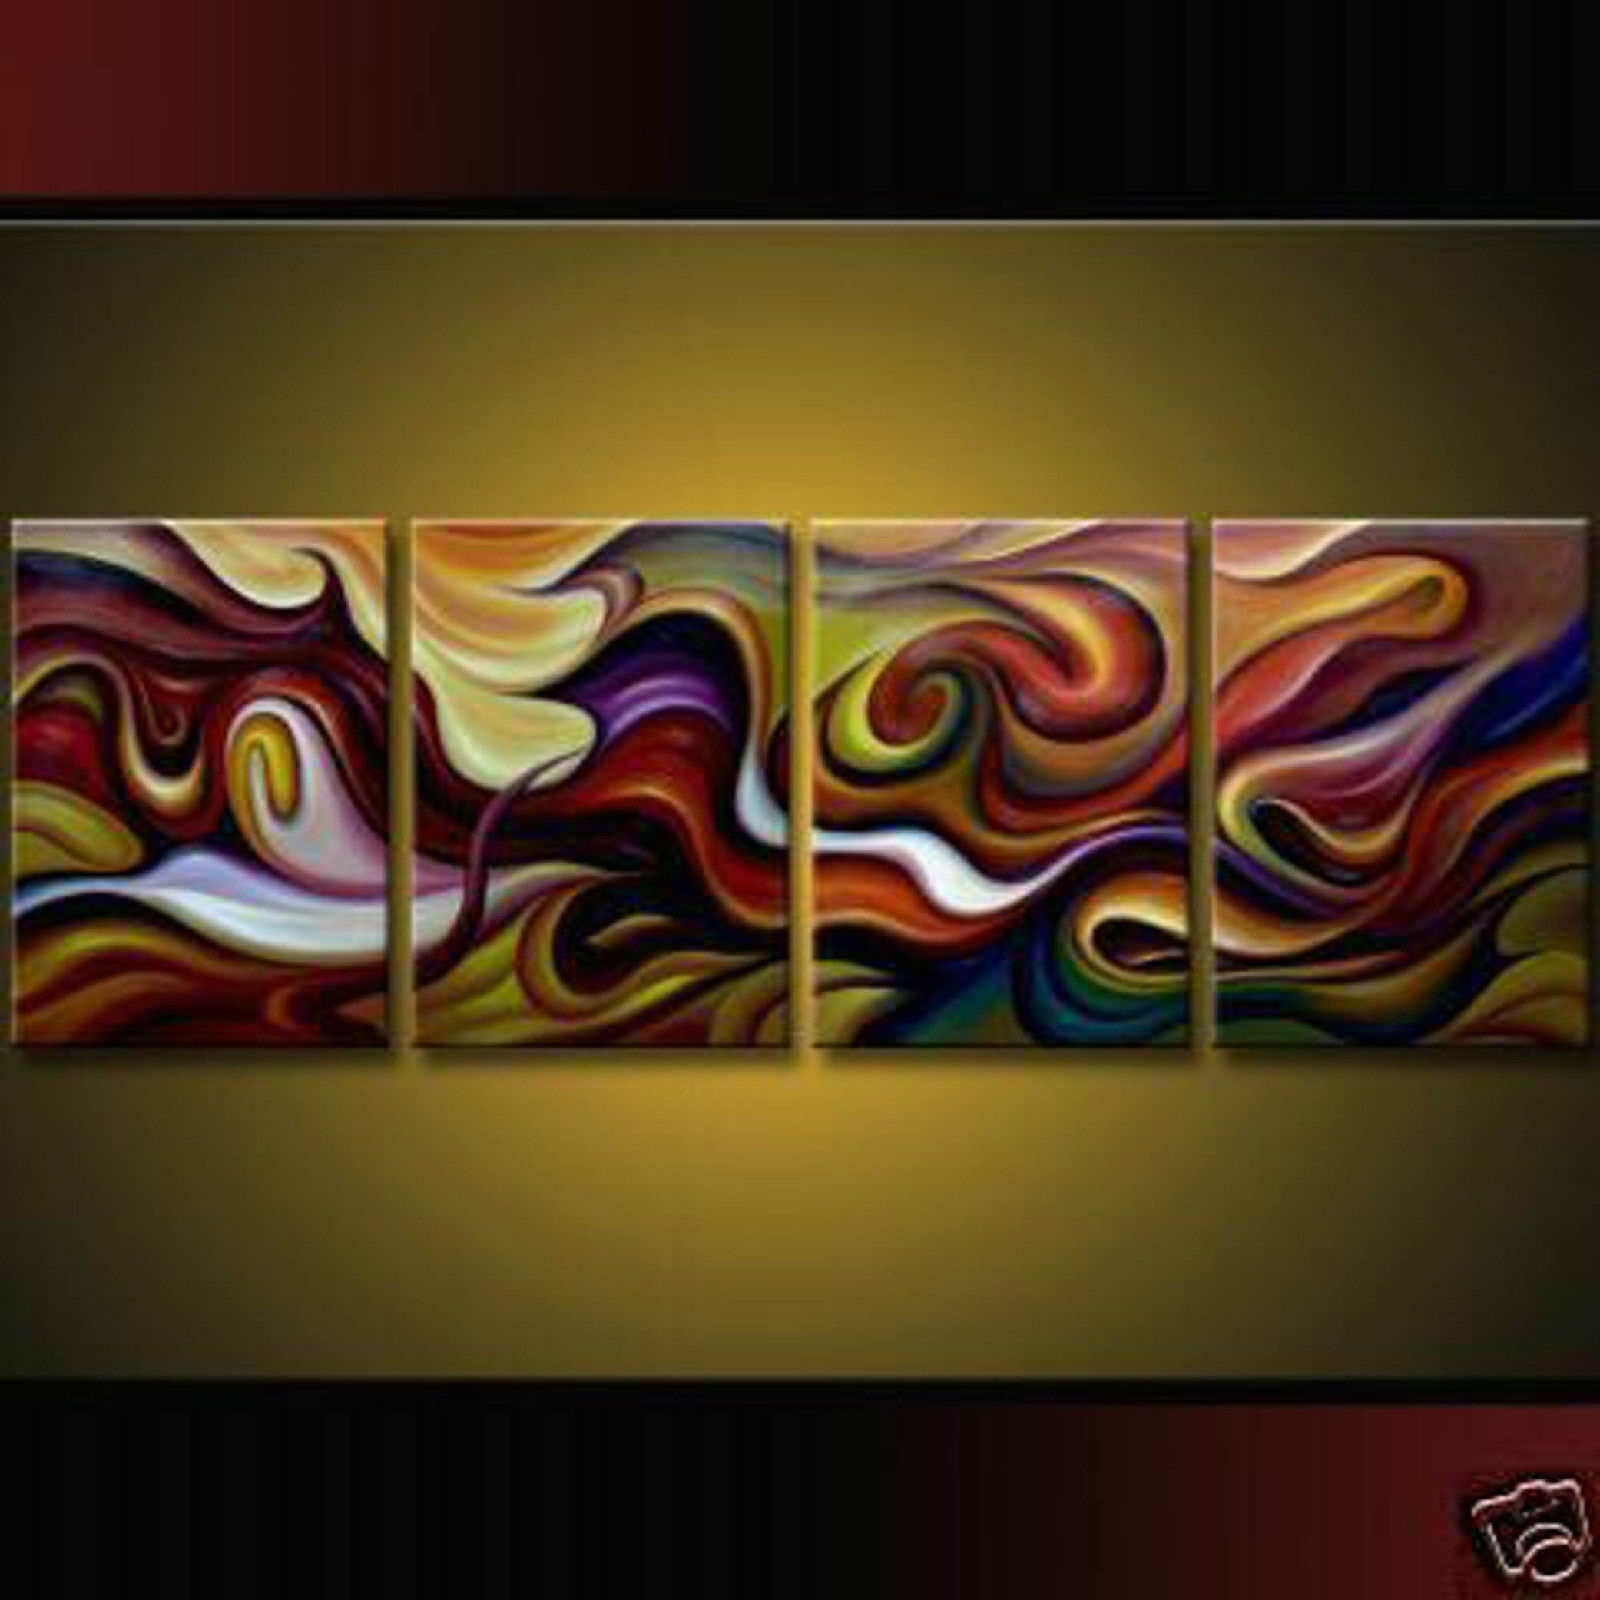 Piece Modern Abstract Huge Art Oil Painting Canvas Wall On Modern Pertaining To Most Recently Released Oil Paintings Canvas Wall Art (View 11 of 15)